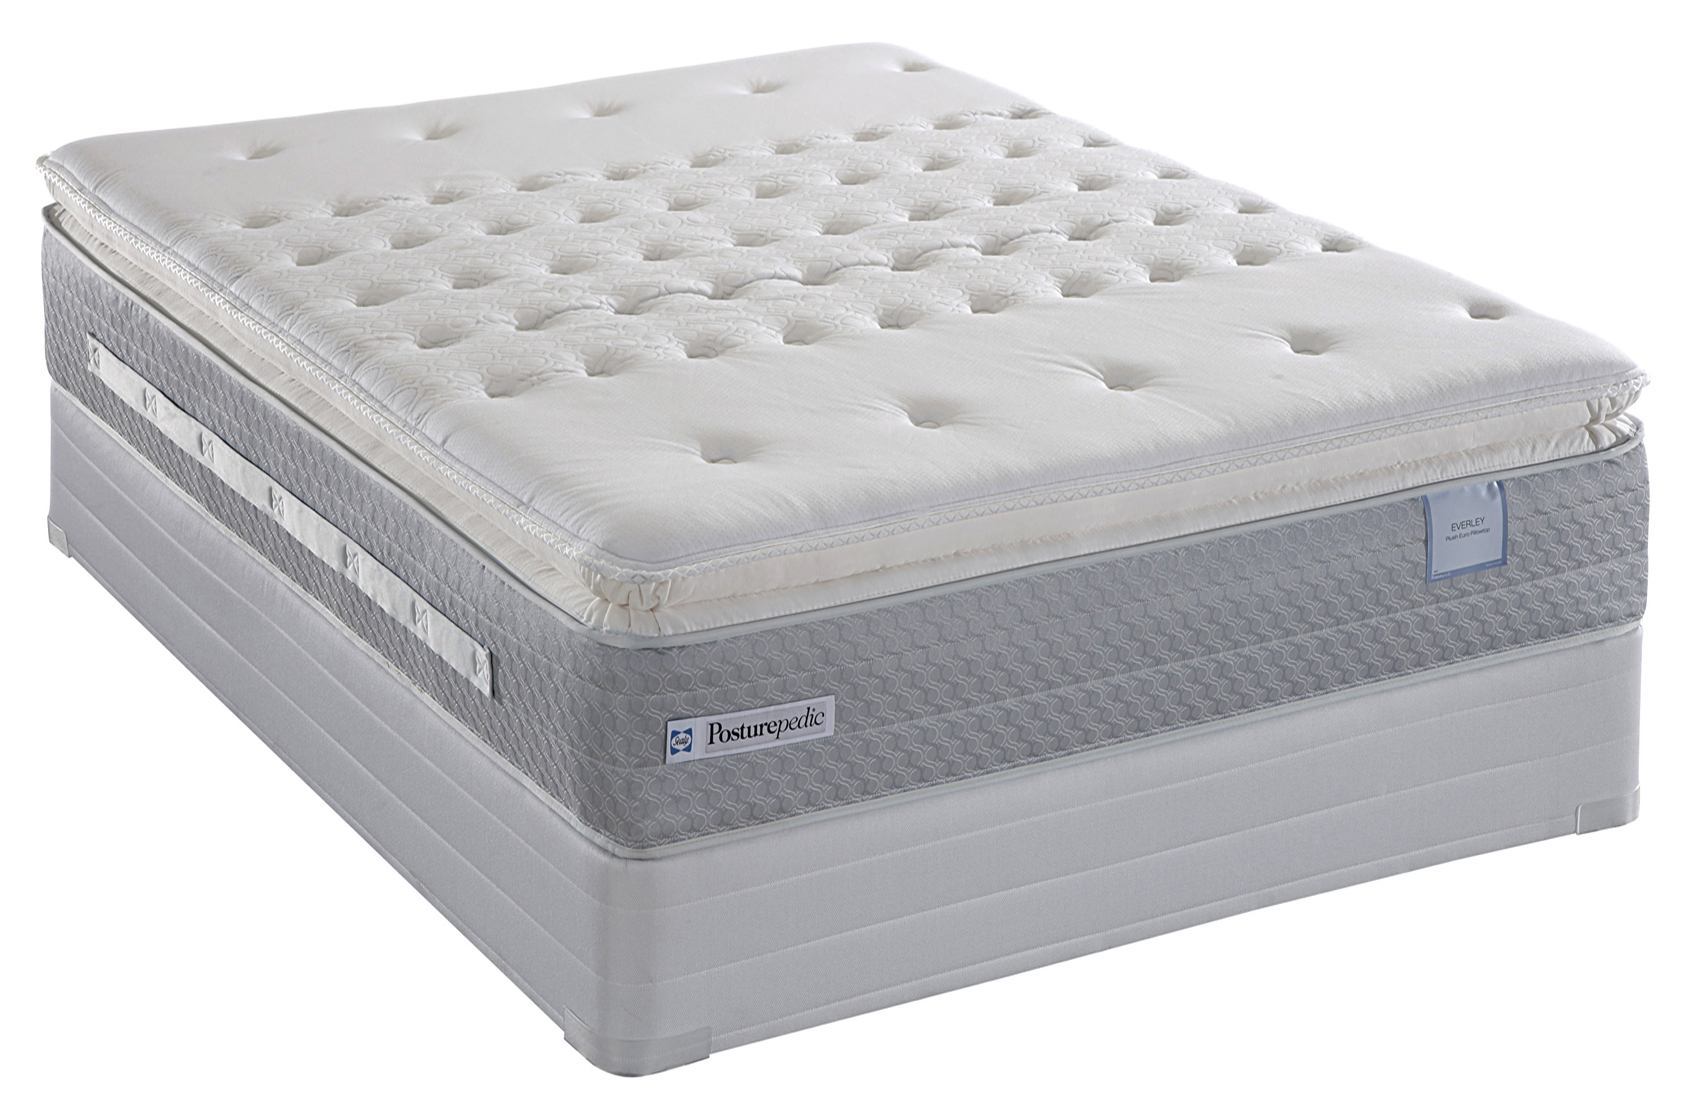 Sealy Posturepedic Titanium Sstm Plush Super Pillow Top